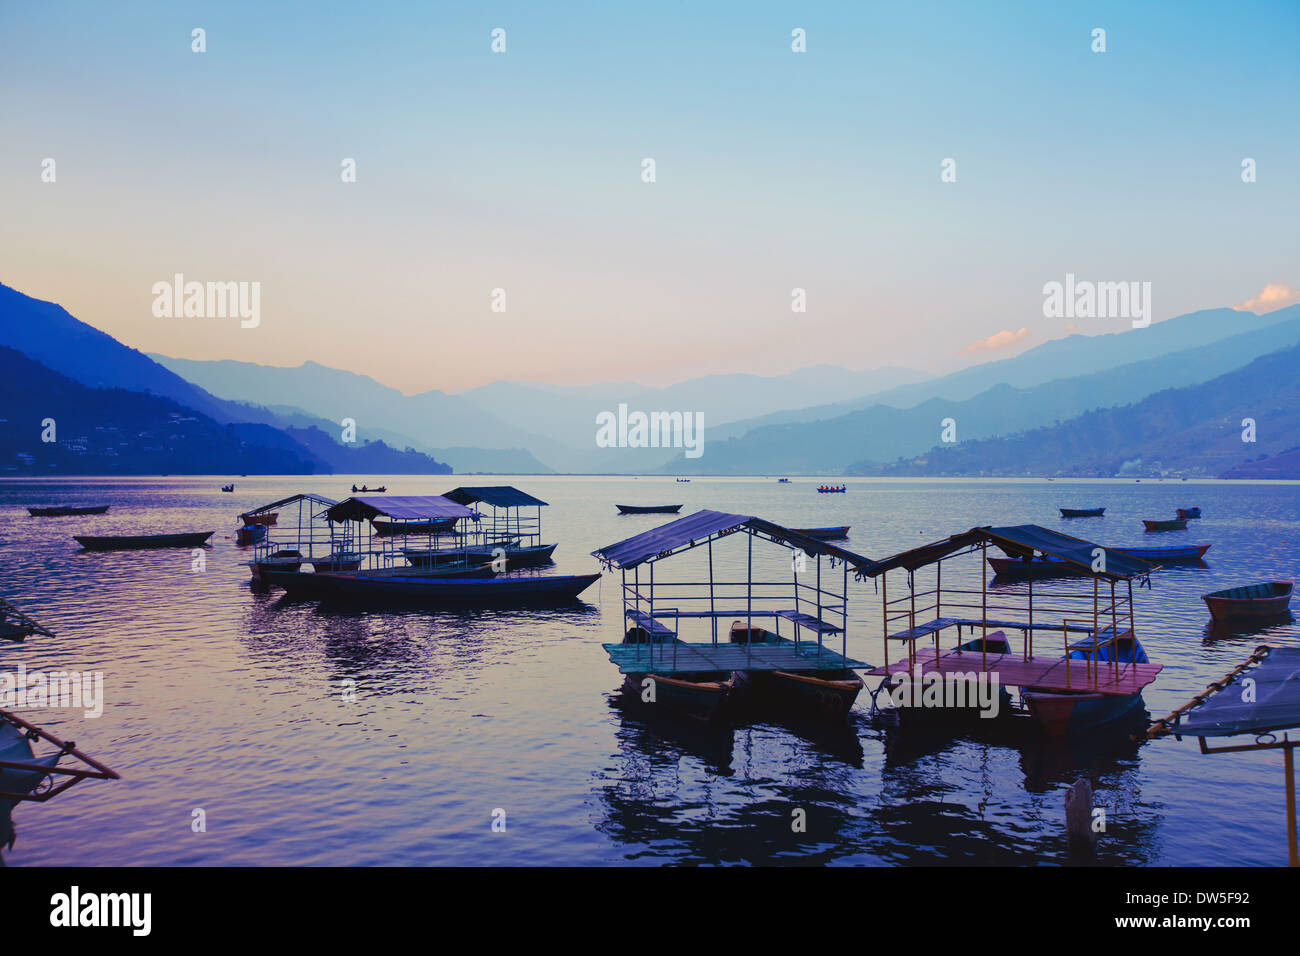 beautiful awesome sunset over Phewa lake, Pokhara, Nepal - Stock Image